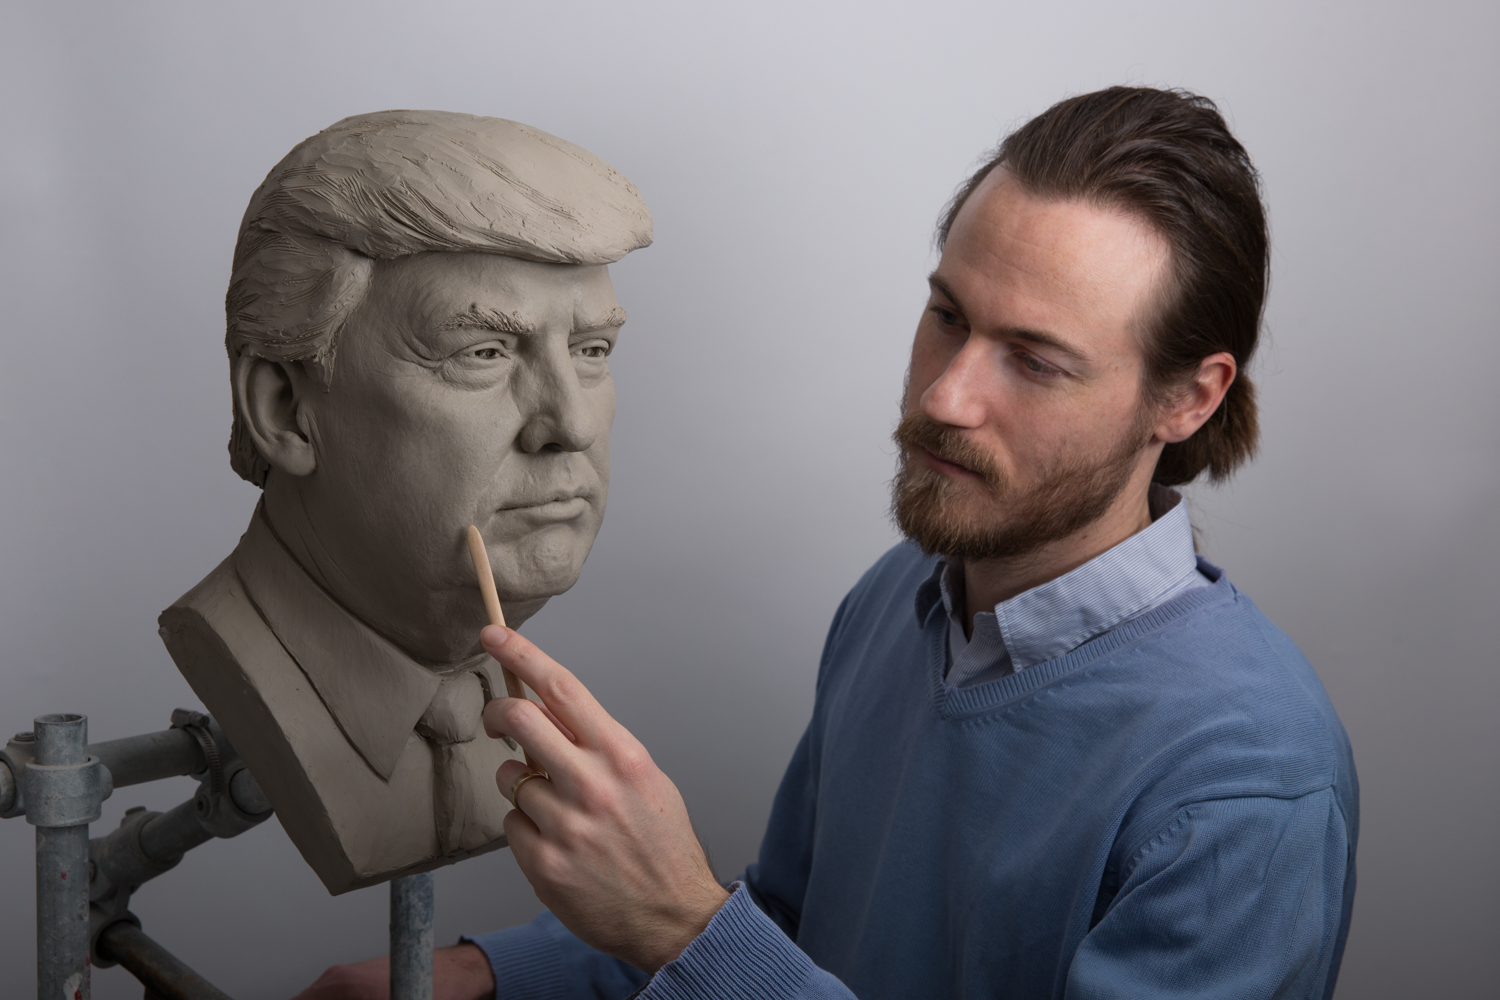 Clay portrait photography